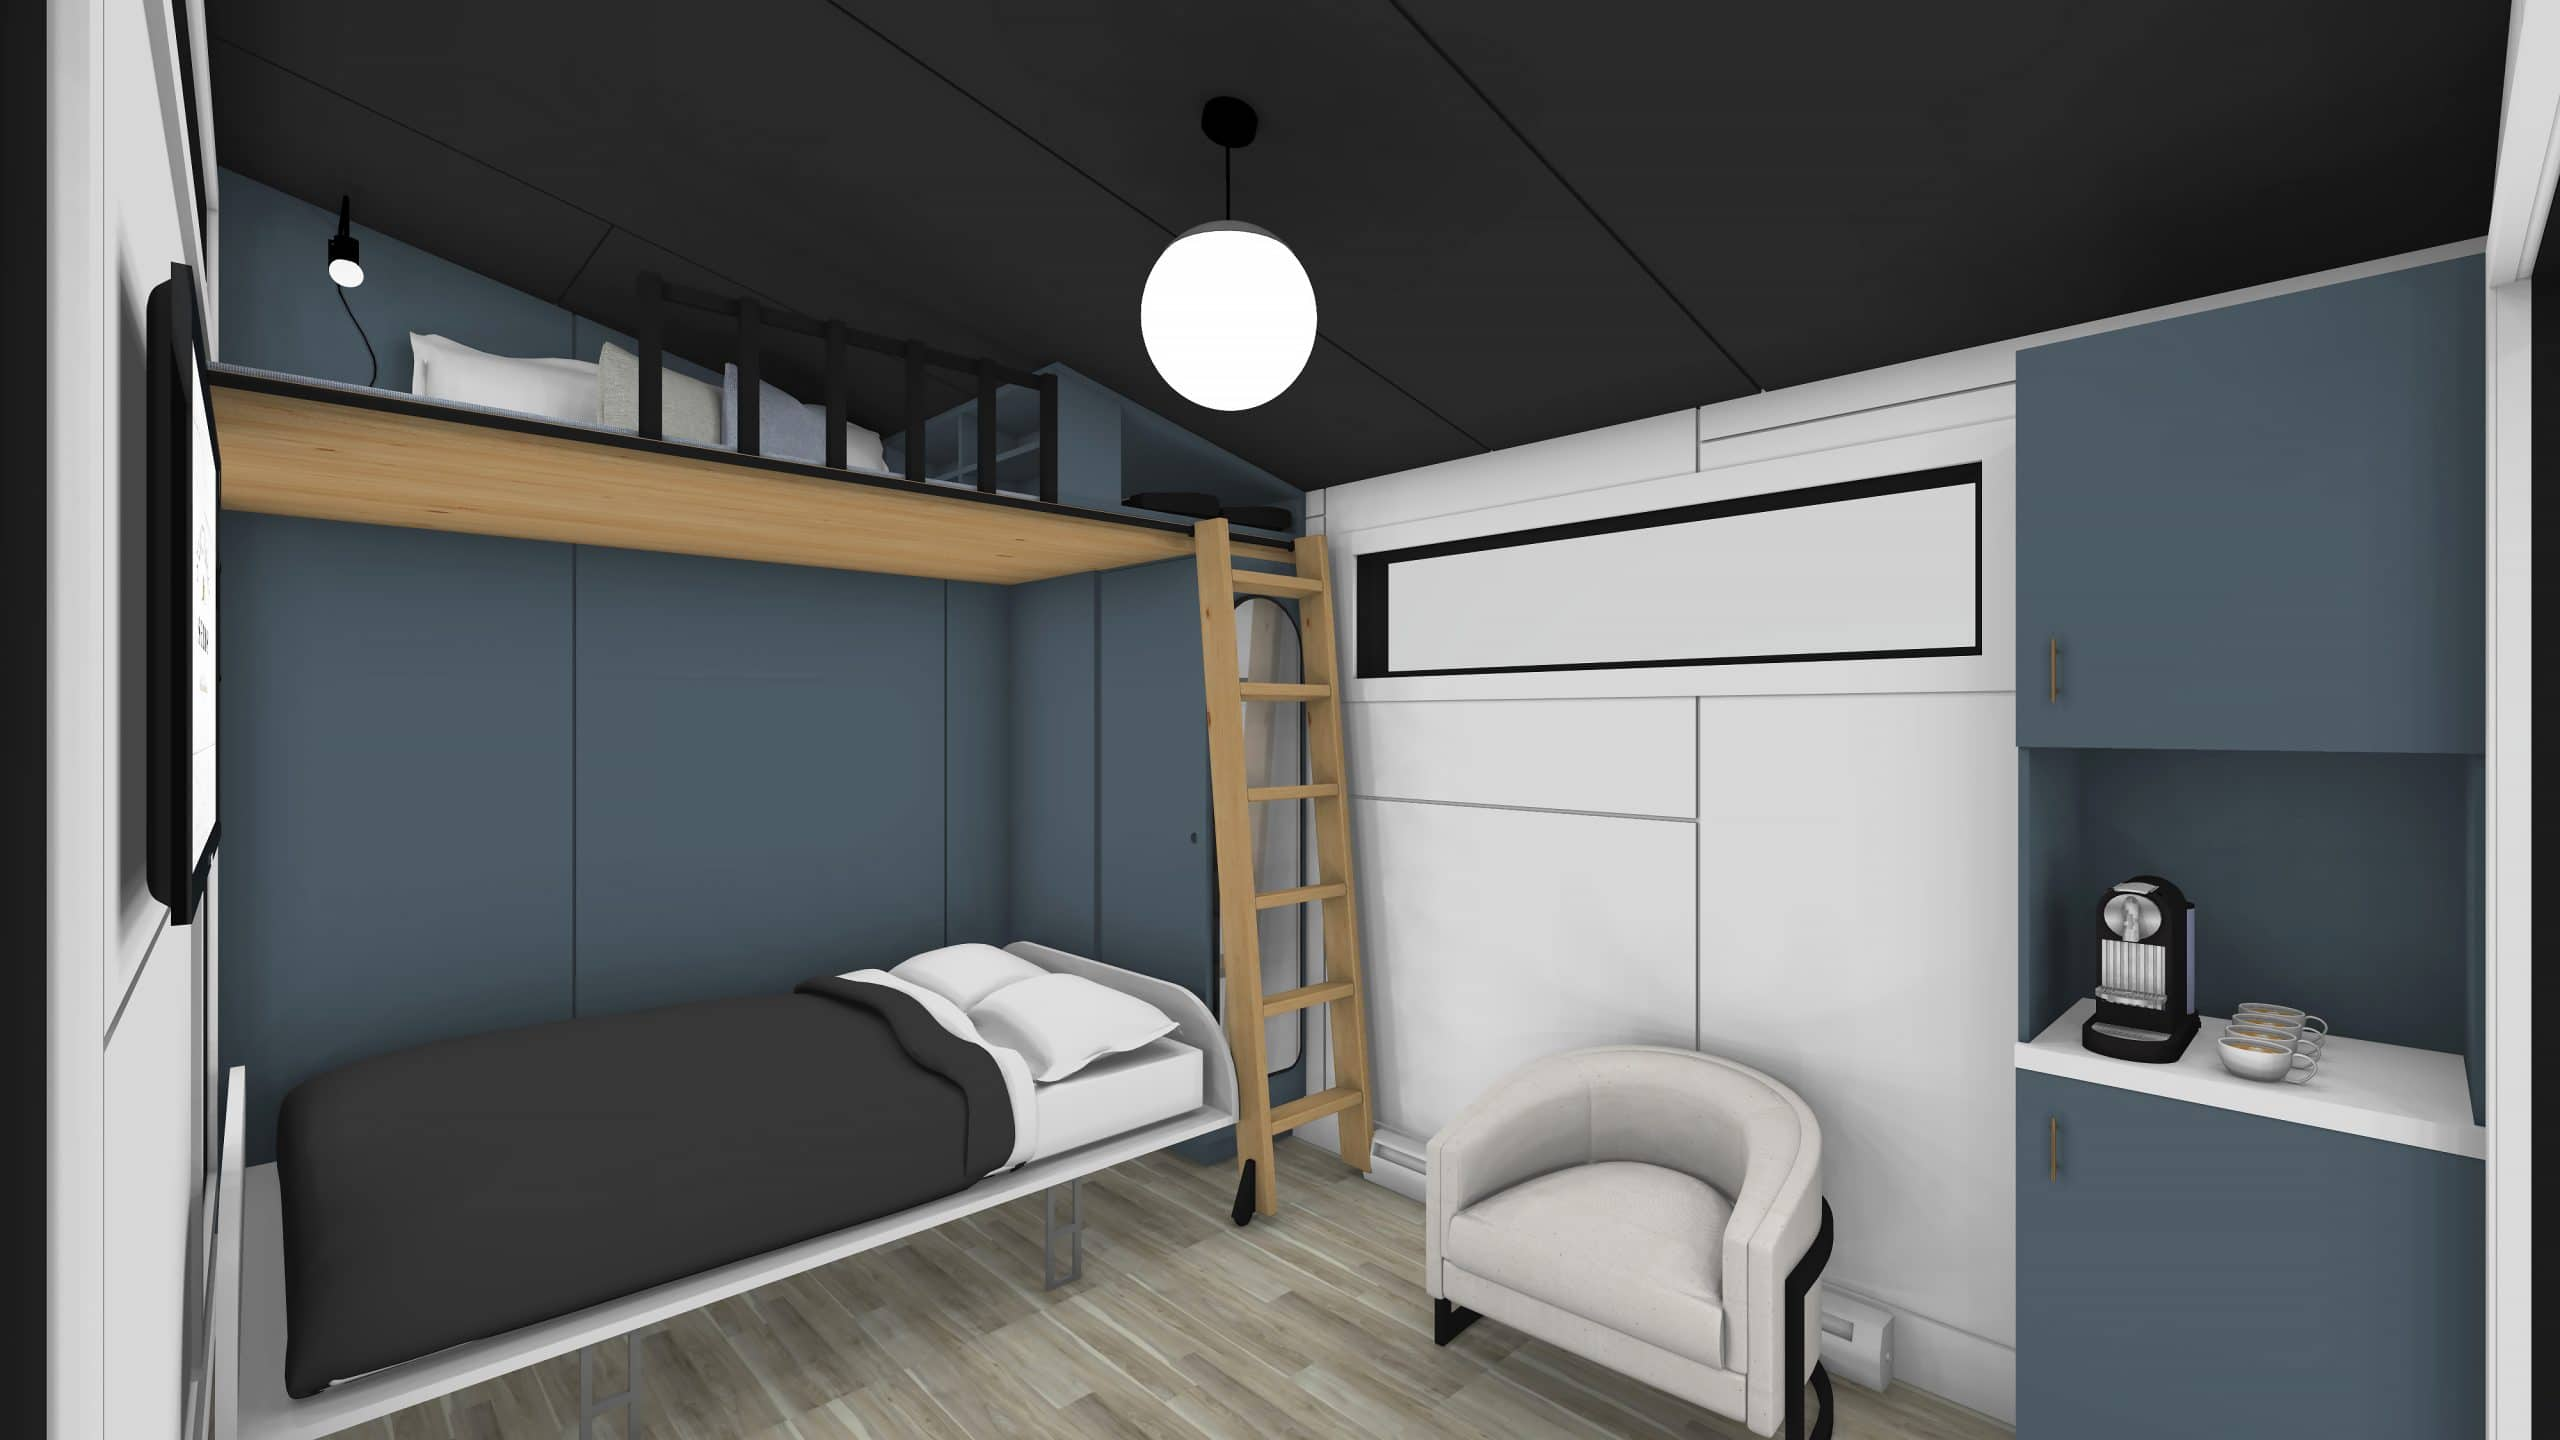 Murphy Bed and Loft 10 x 14 Modern Interior 2 - featured image